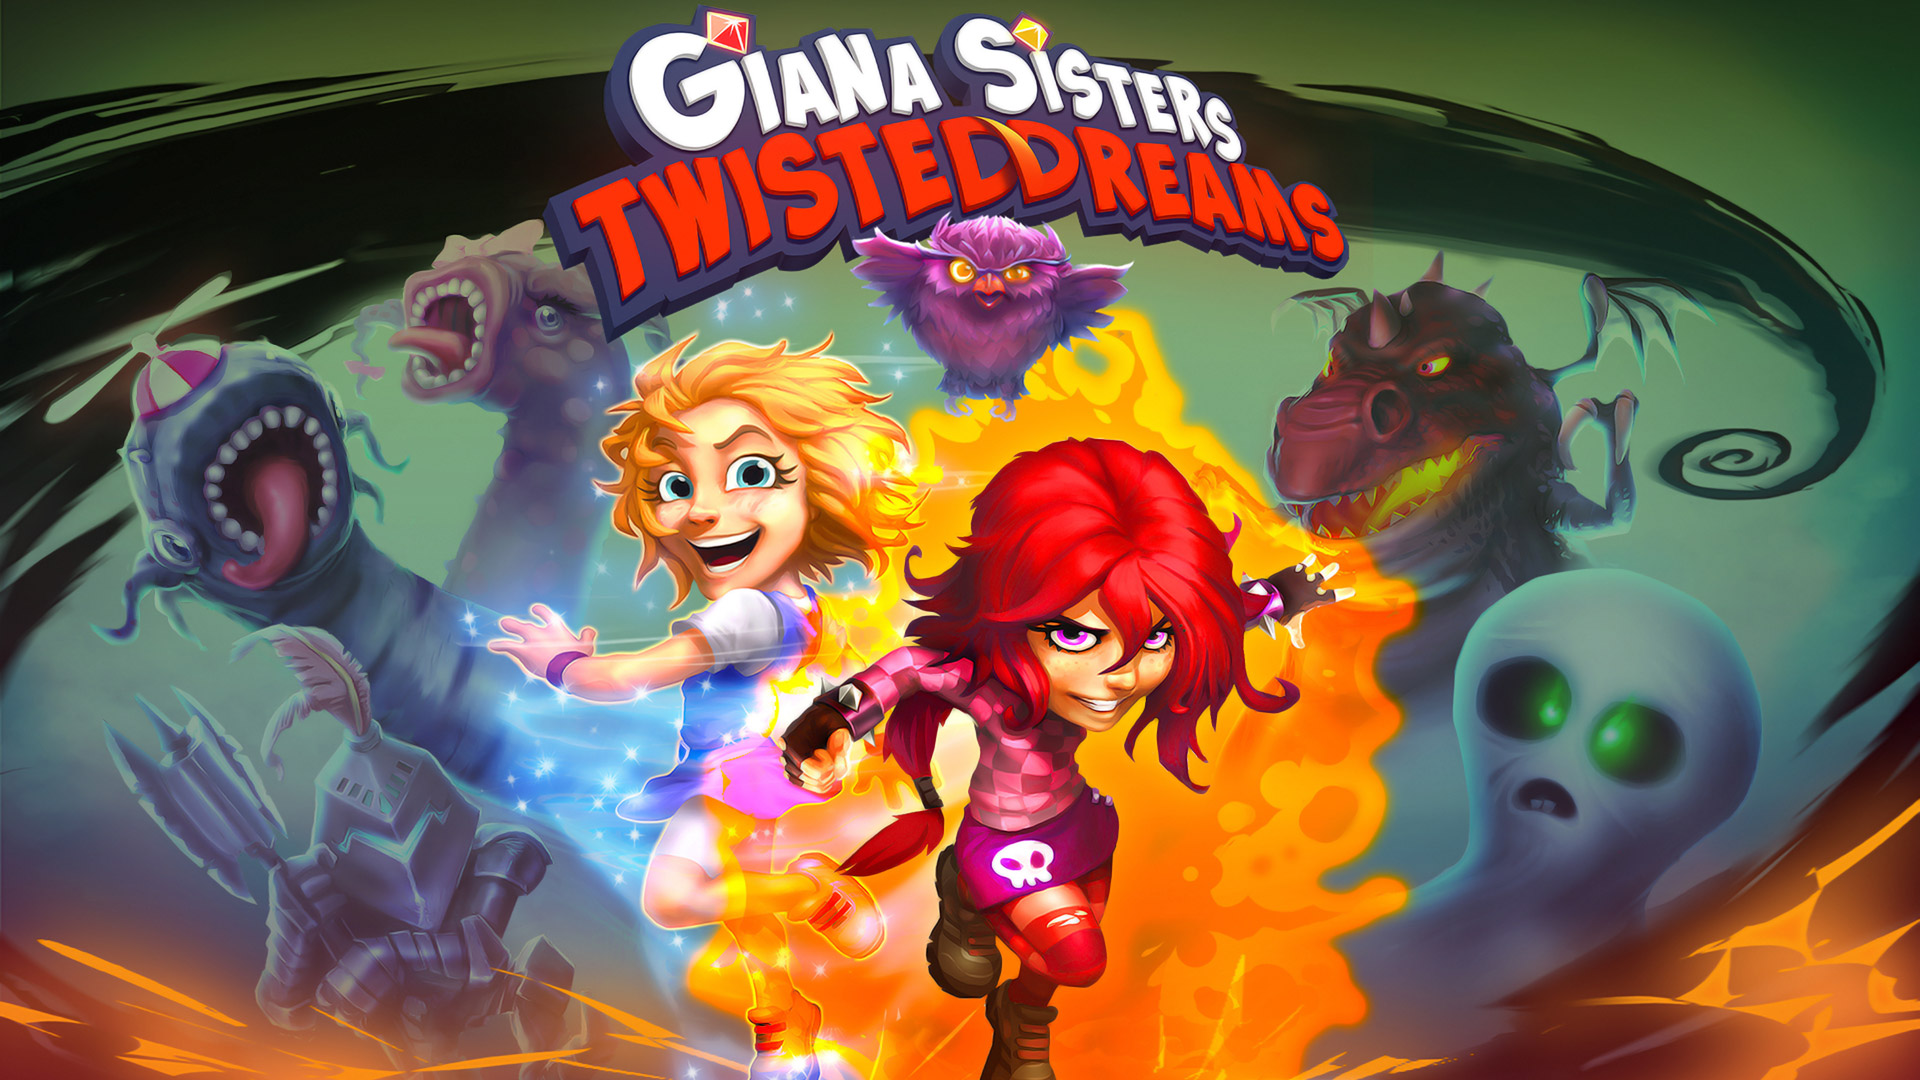 Giana Sisters: Twisted Dreams Wallpaper in 1920x1080